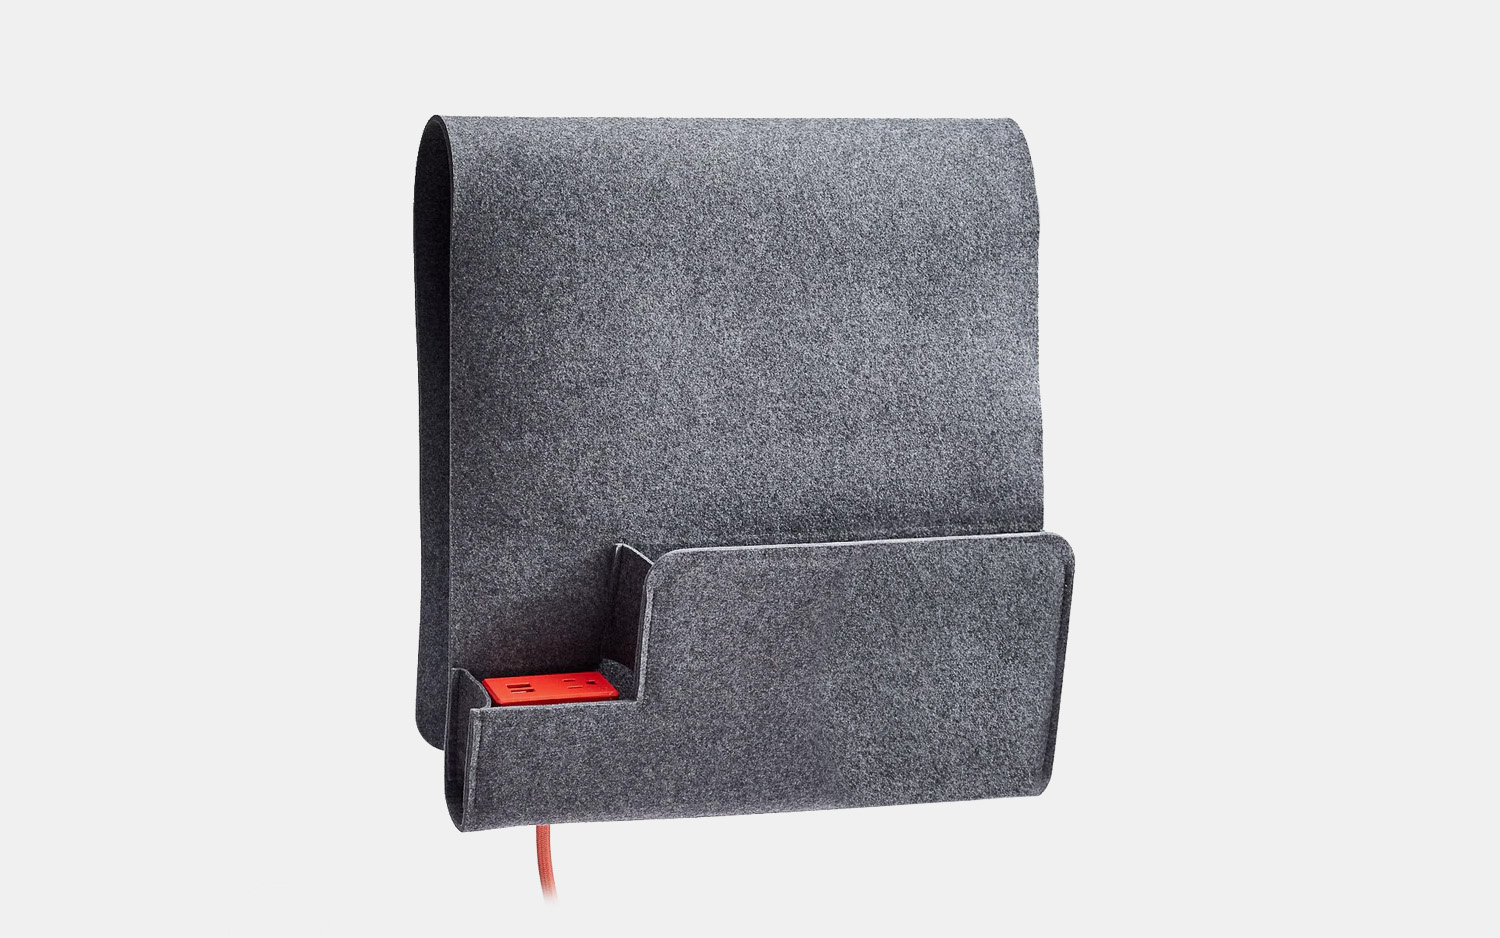 Sidekick Sofa Caddy With Outlet